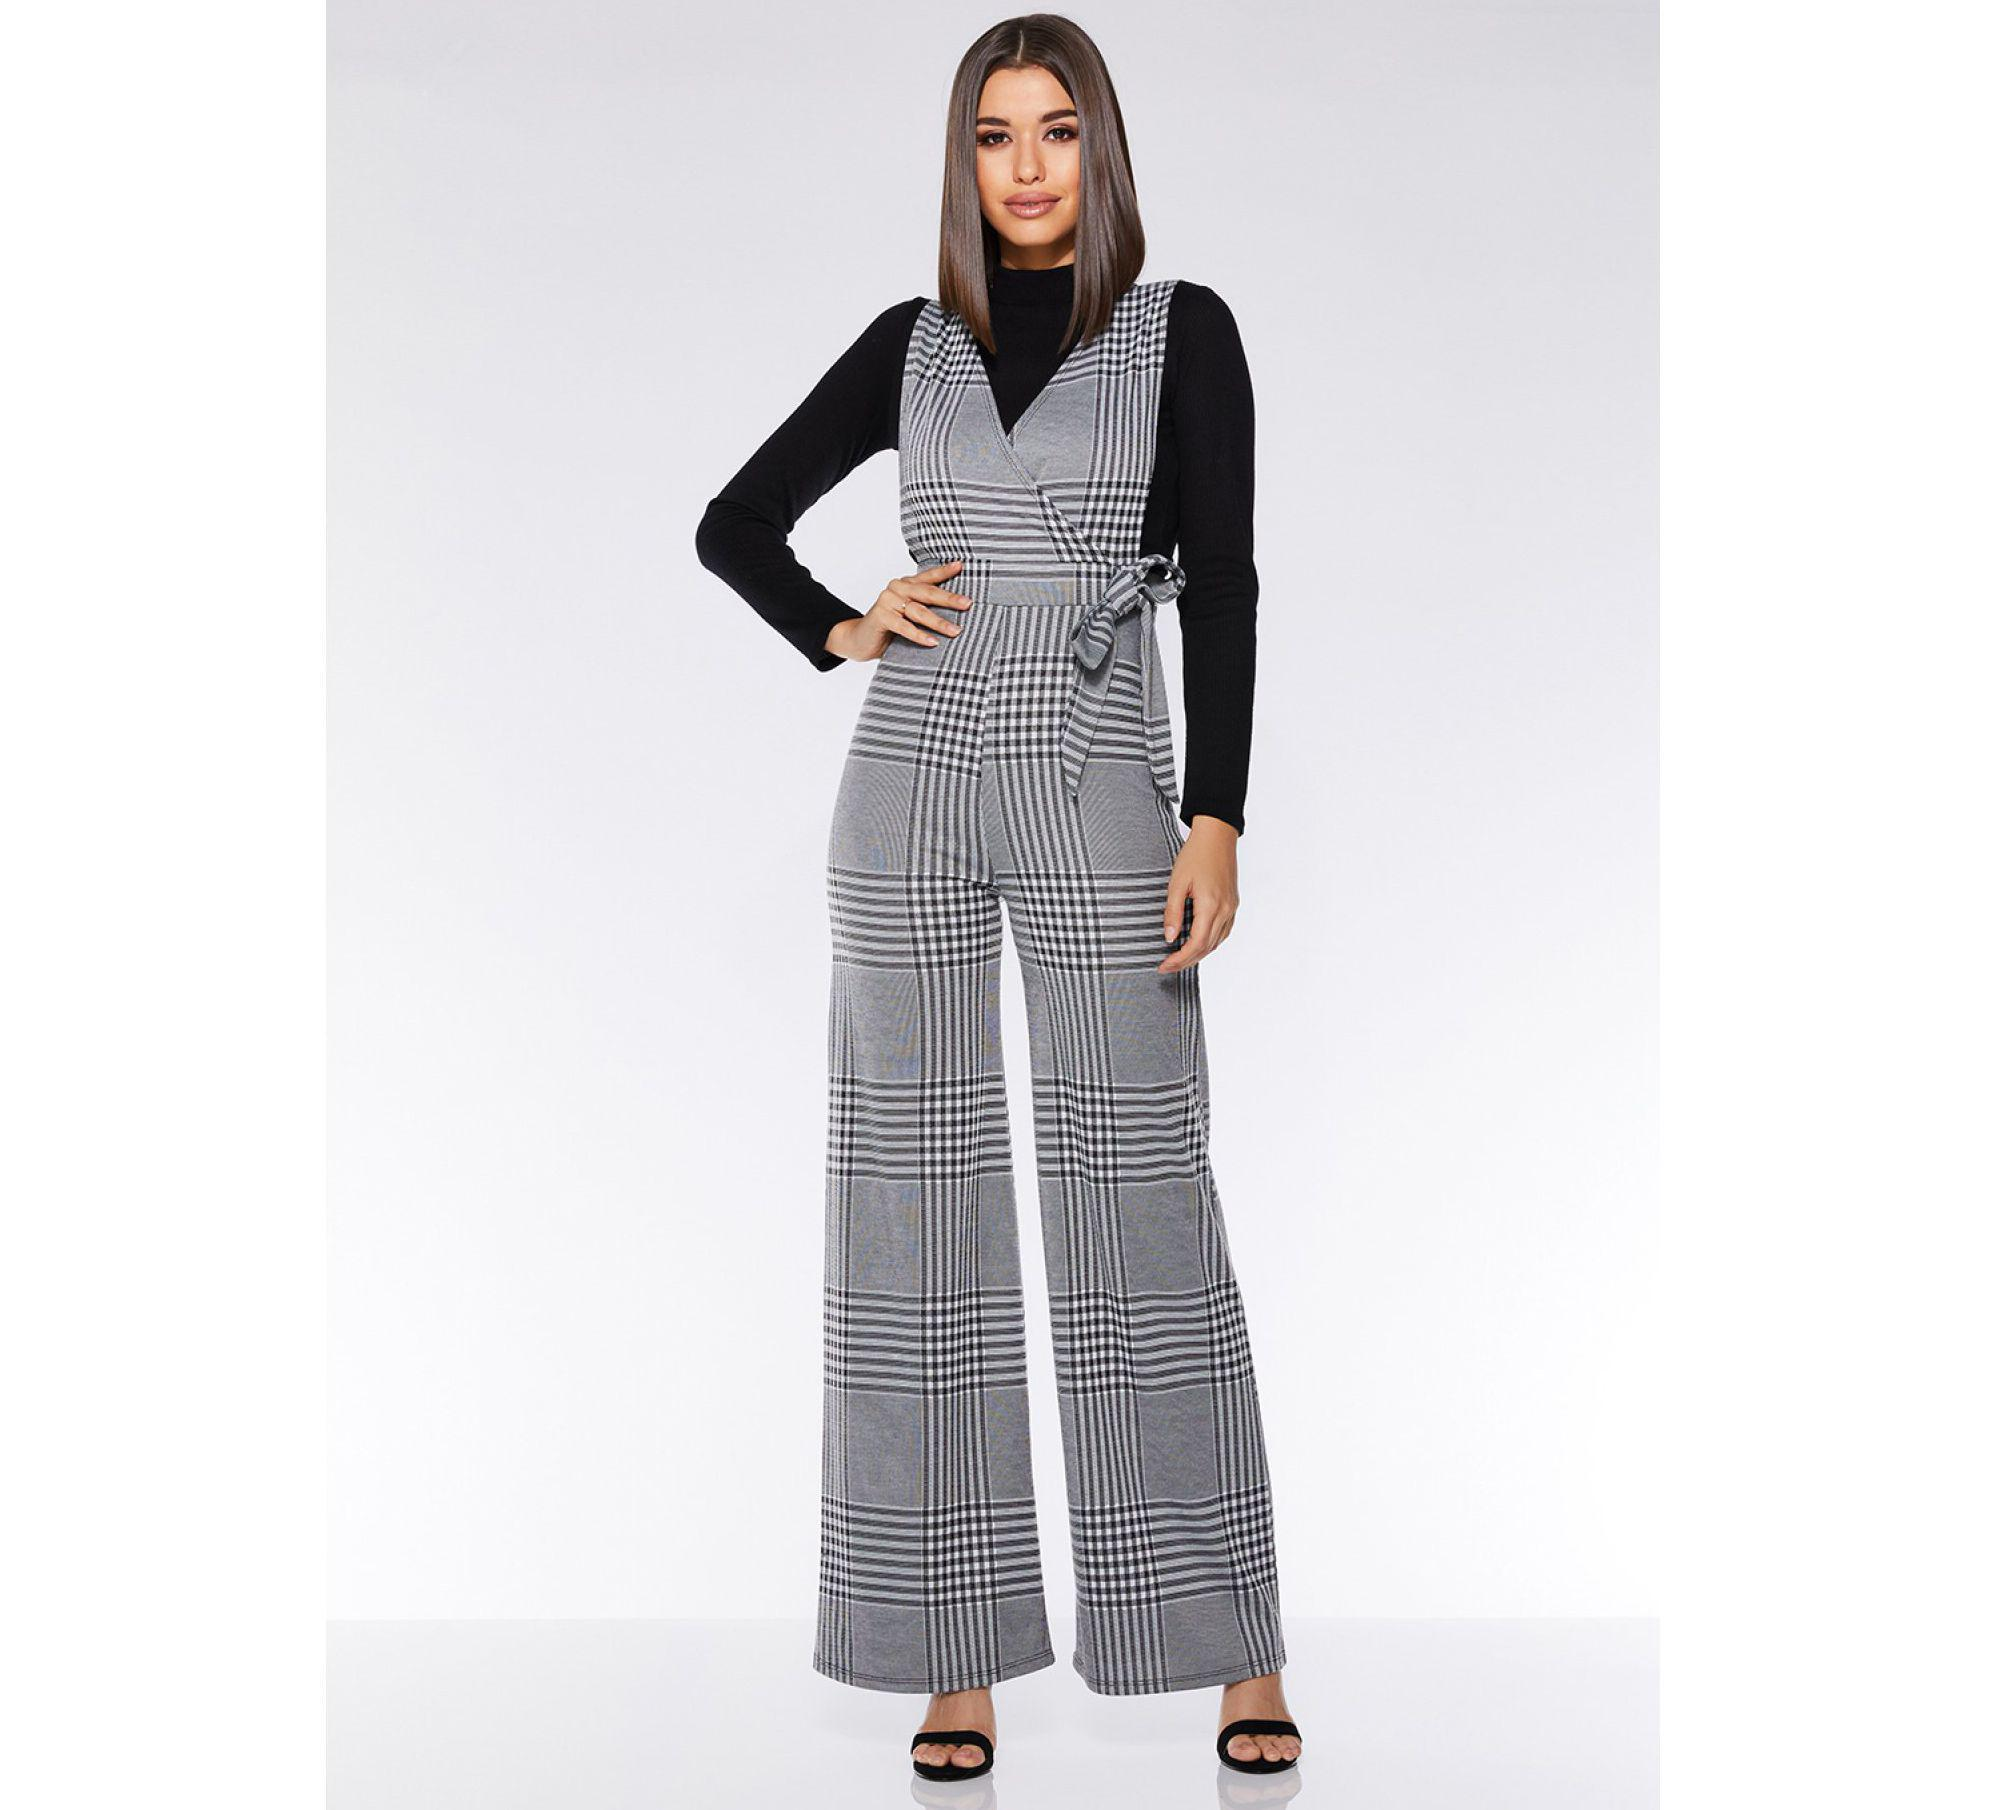 ca268a83871 Quiz Grey And Black Check Tie Belt Jumpsuit in Gray - Lyst